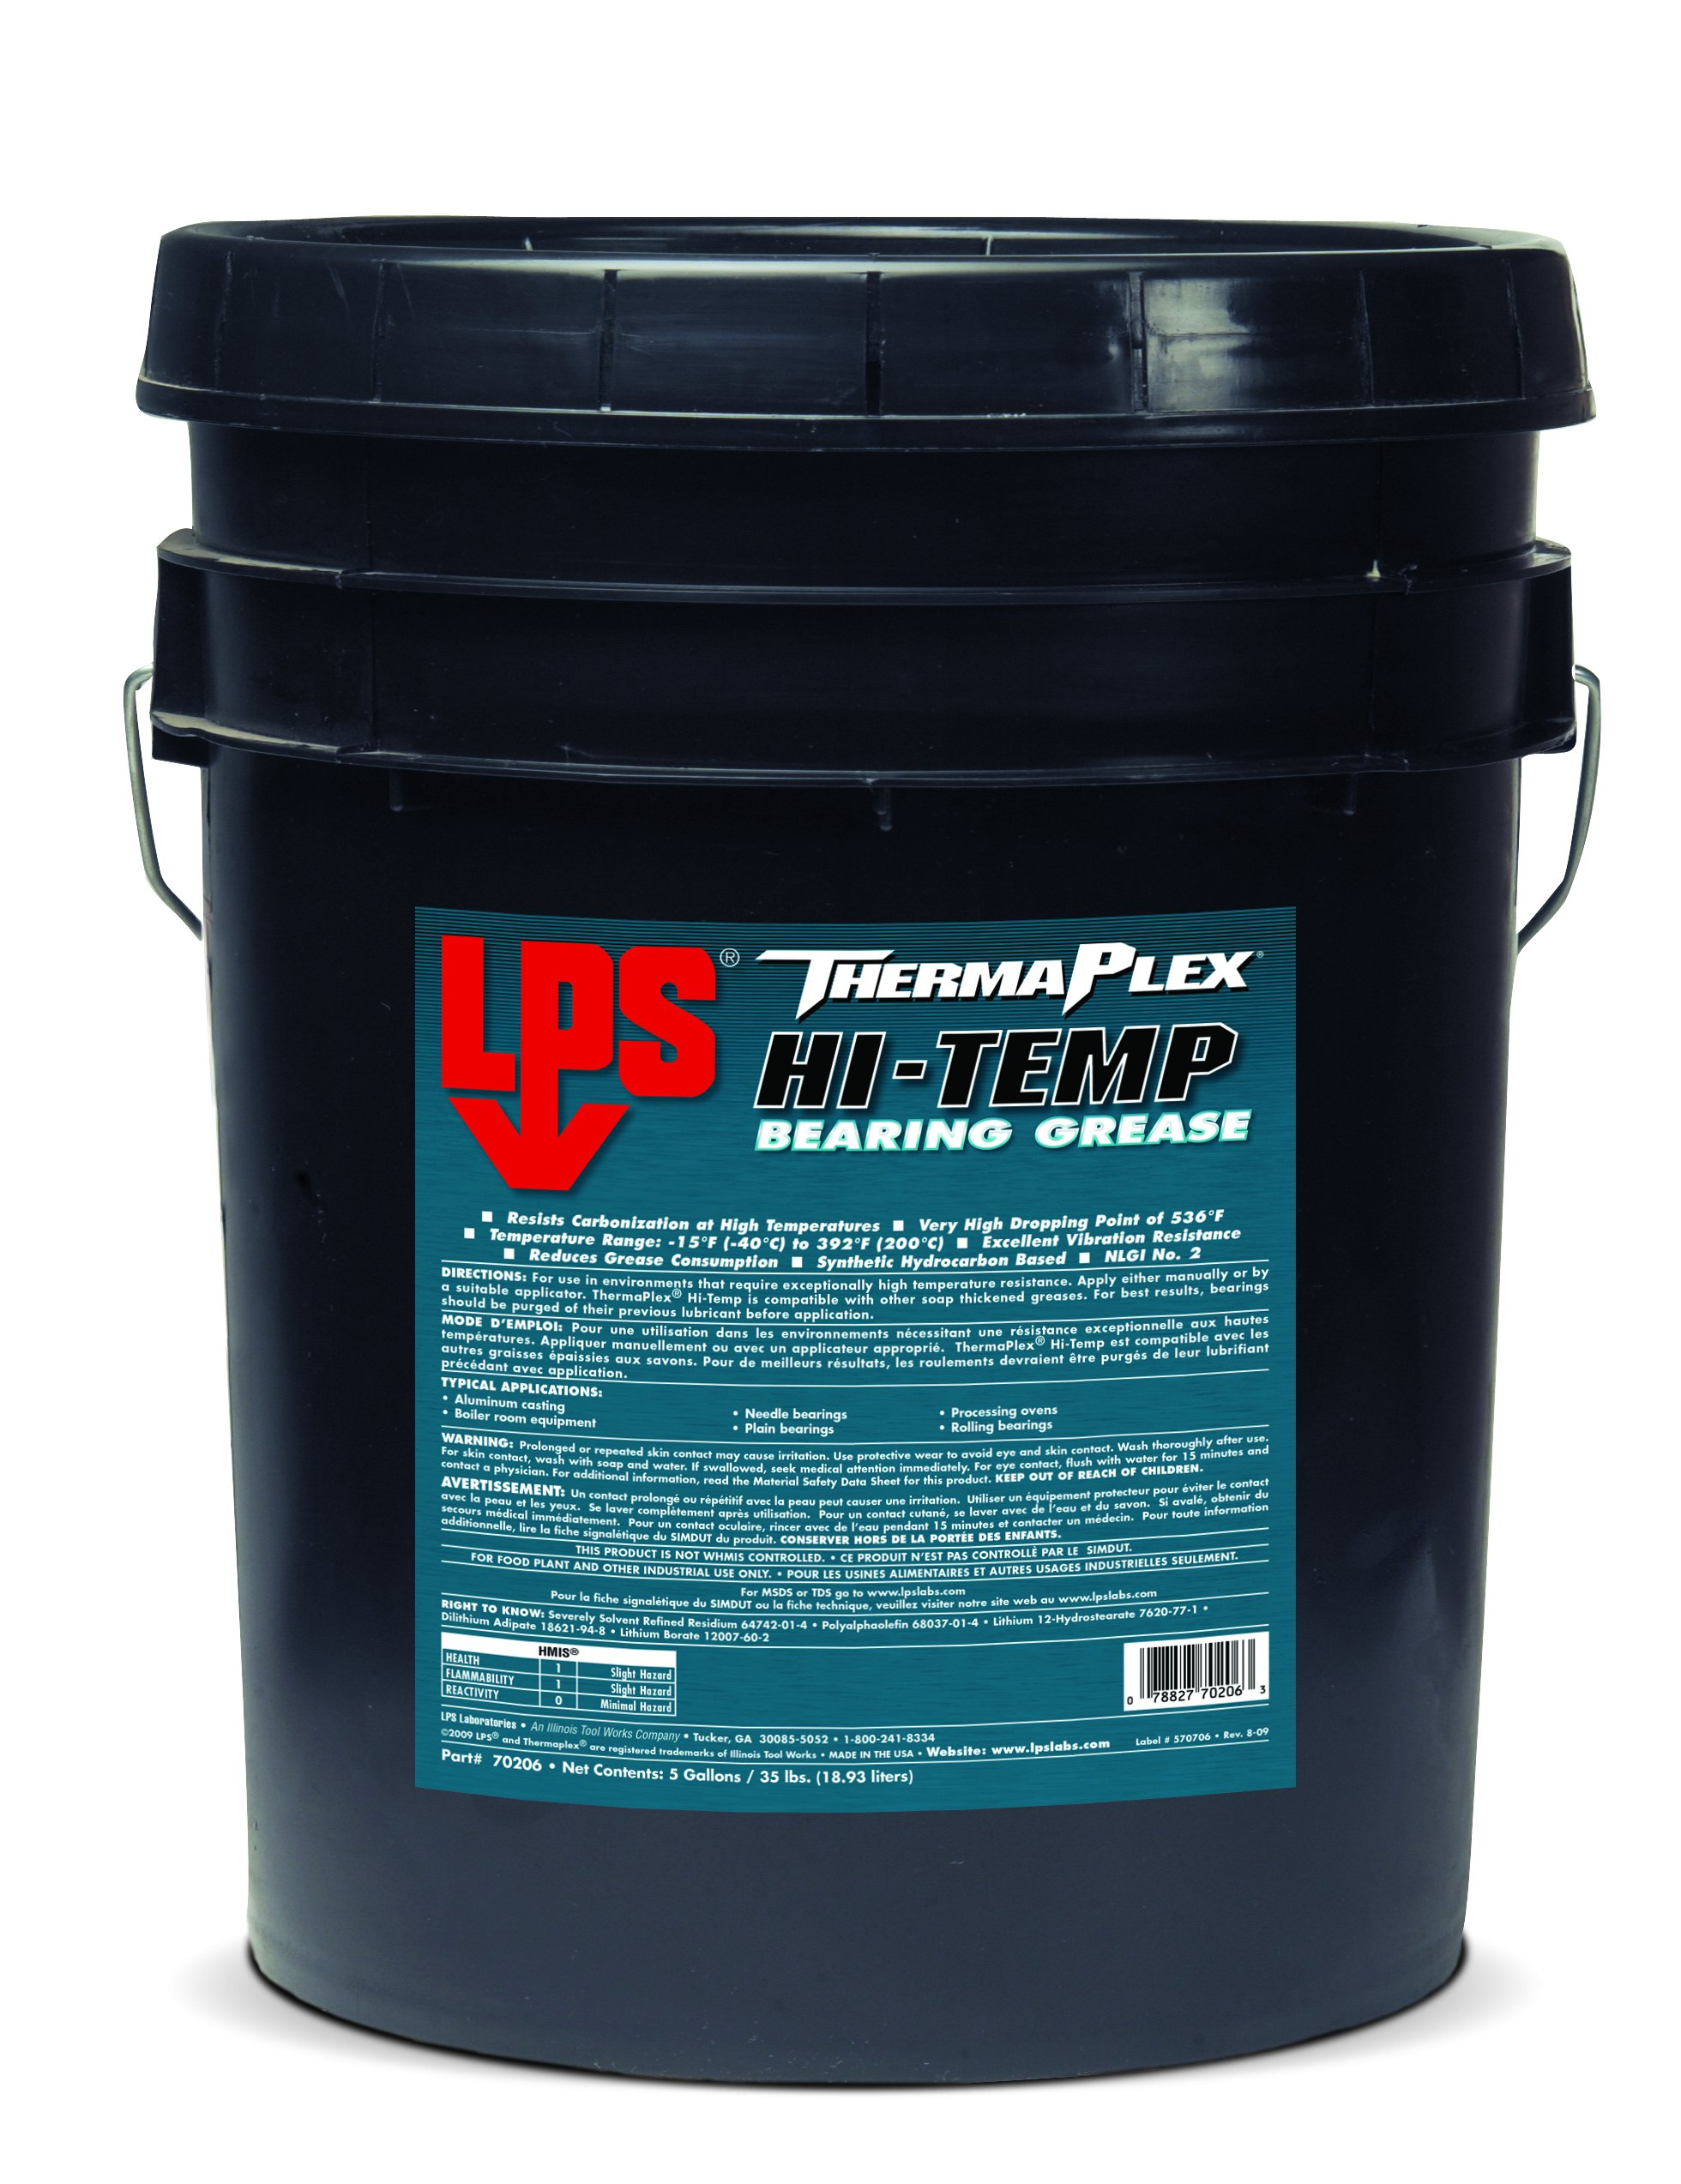 LPS ThermaPlex Hi-Temp Bearing Grease, 35 lbs